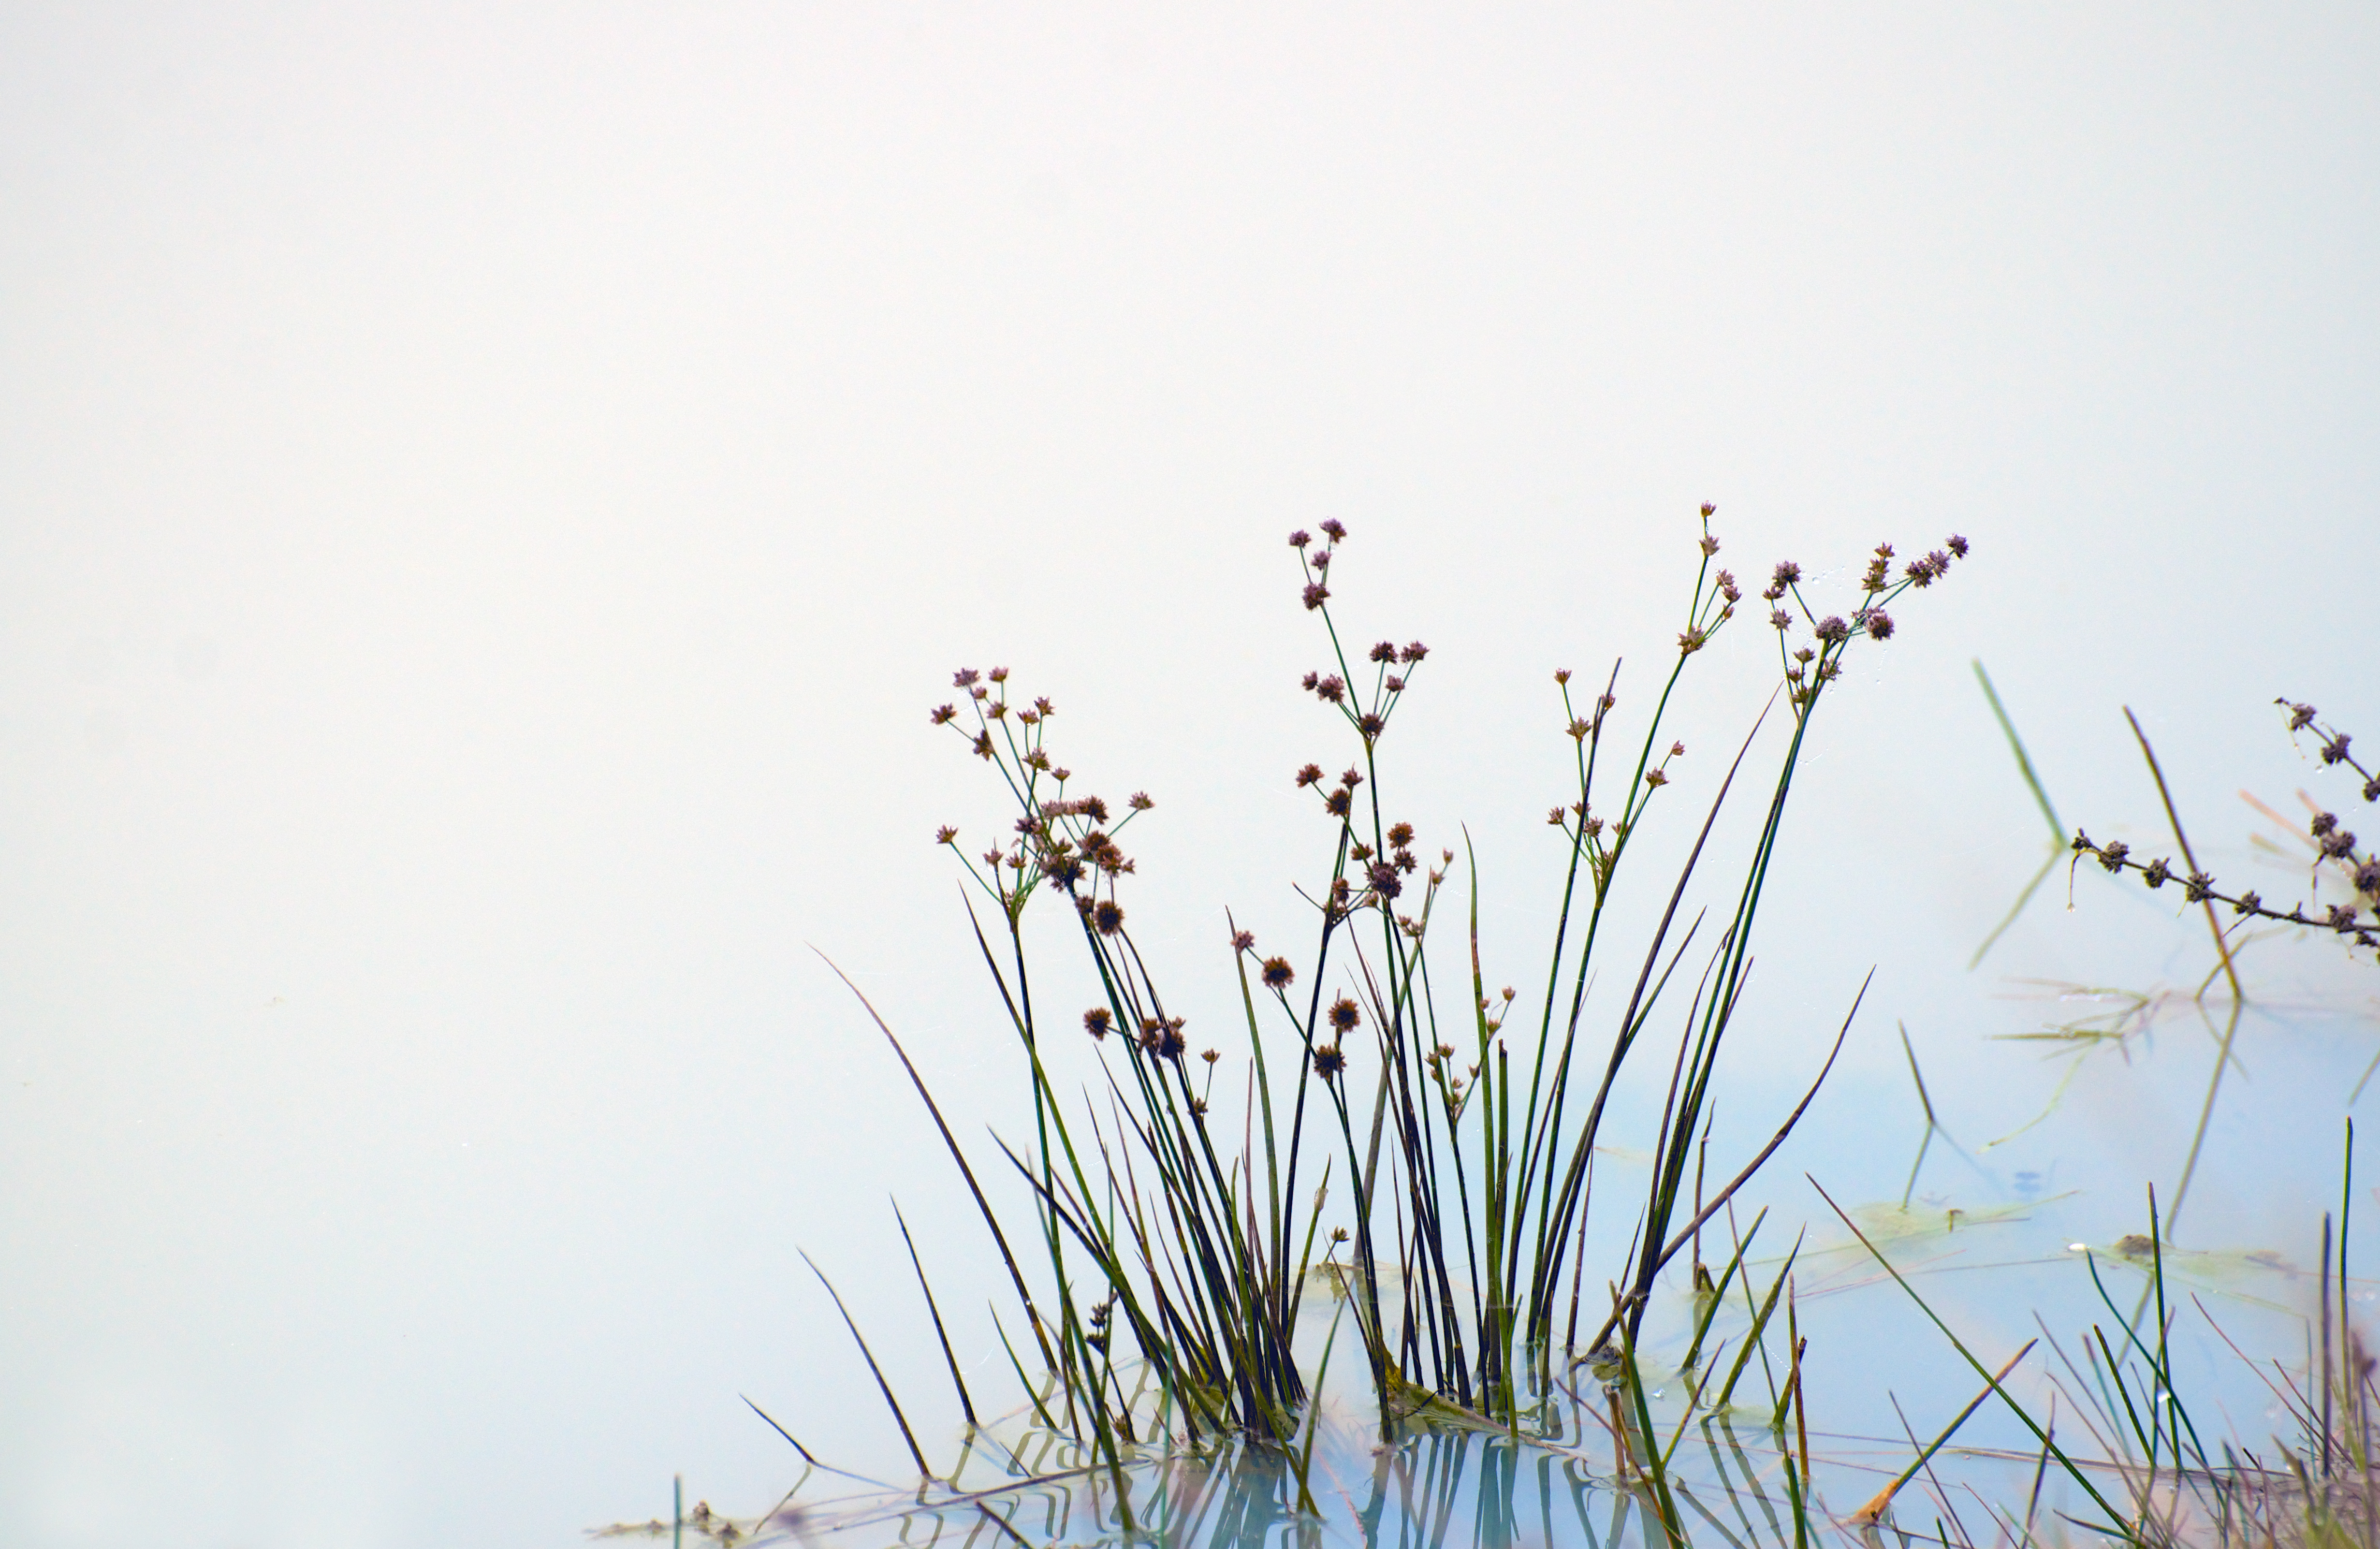 Weeds-with-Fog-and-Blue-Water, Russell Tomlin